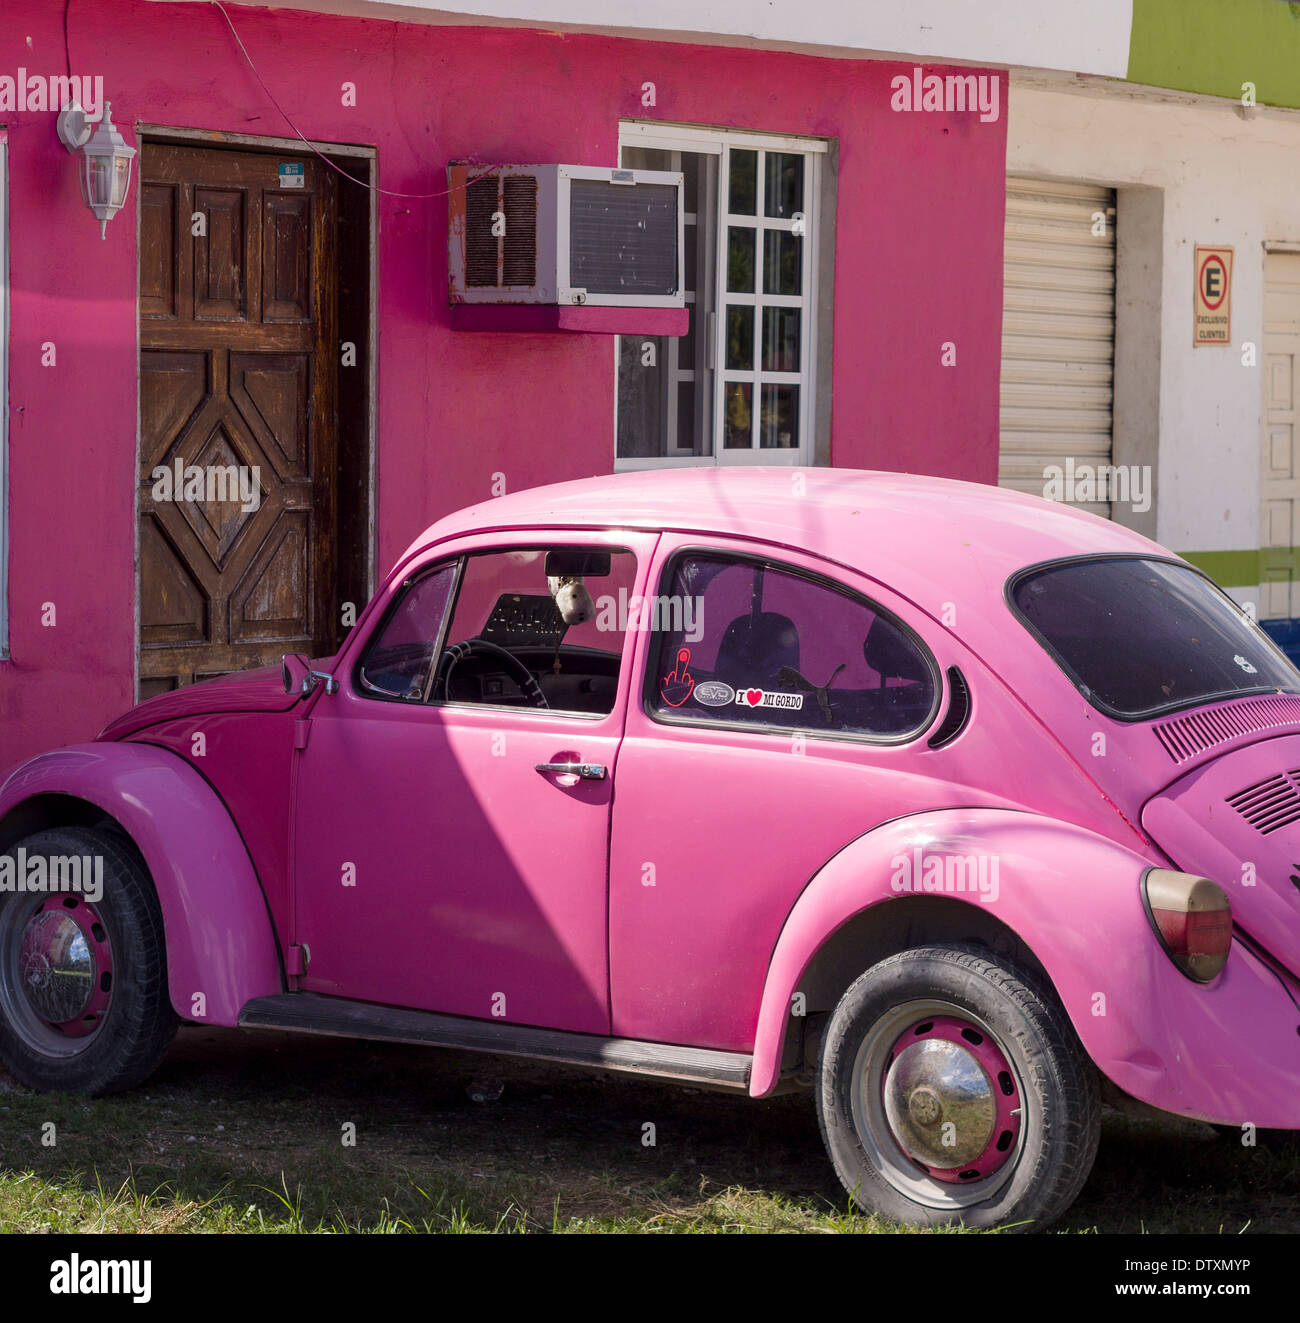 Pink VW and Matching House. A bright pink Volkswagen beetle parked in front of a pink house. Tulum, Quintana Roo, Mexico - Stock Image